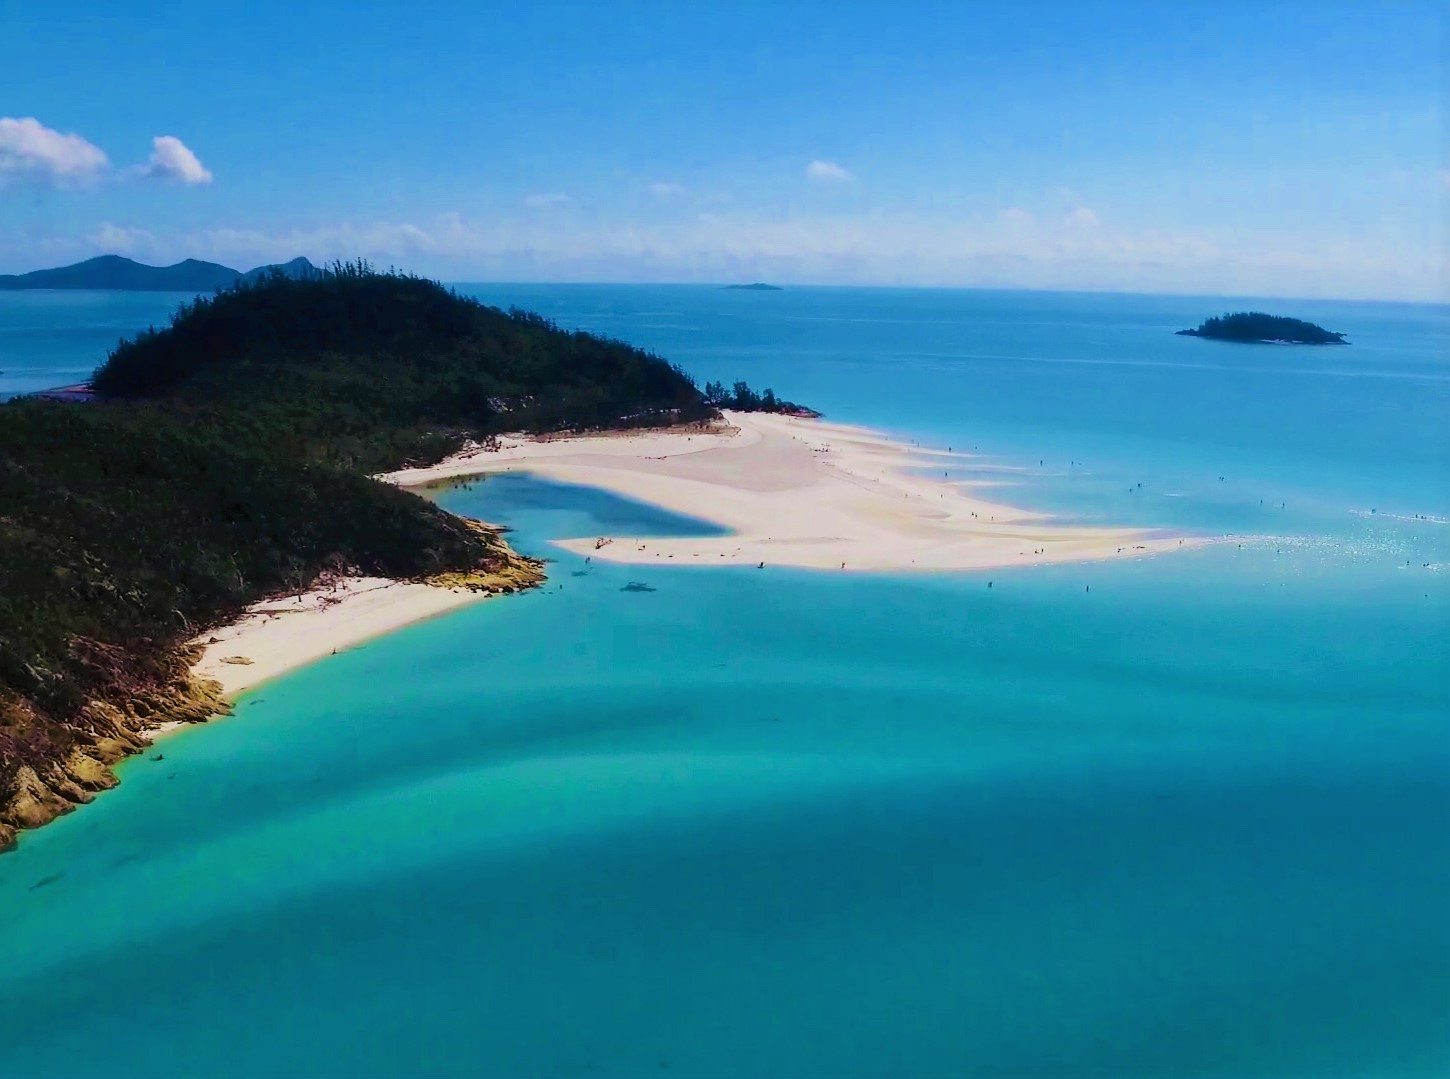 Whitsundays Islands in Australien - Whitehaven Beach